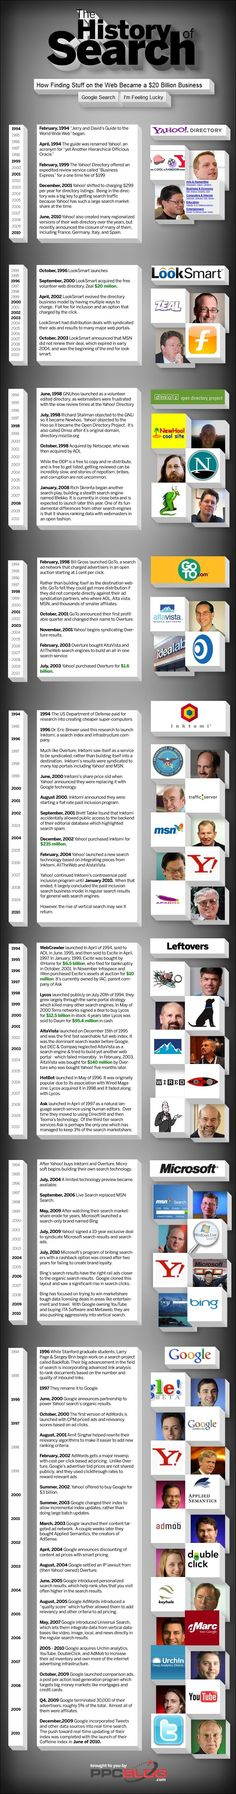 The History of Search